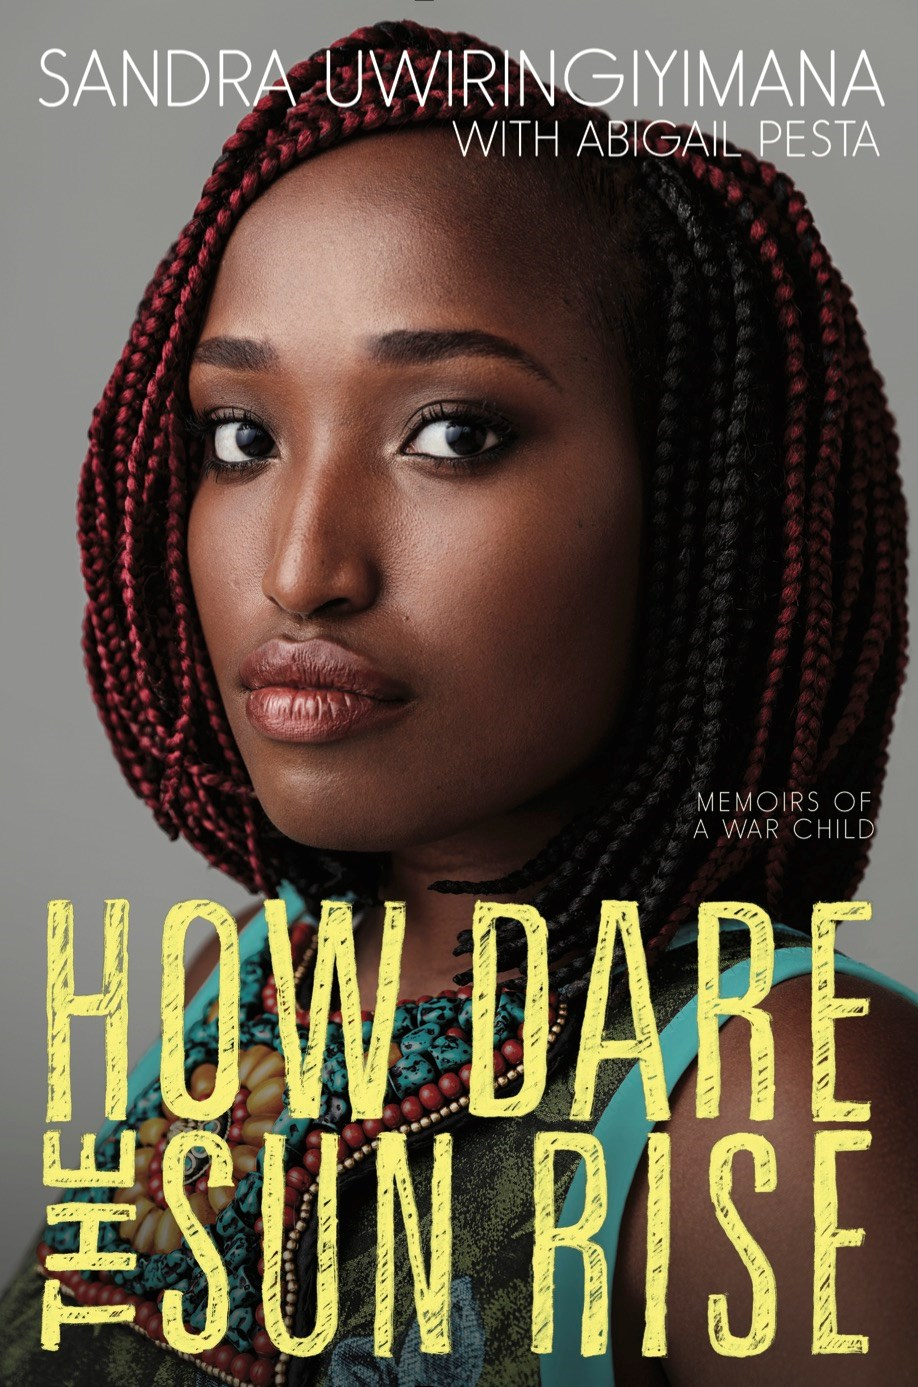 HOW DARE THE SUN RISE by Sandra Uwiringiyimana - on sale May 16, 2017